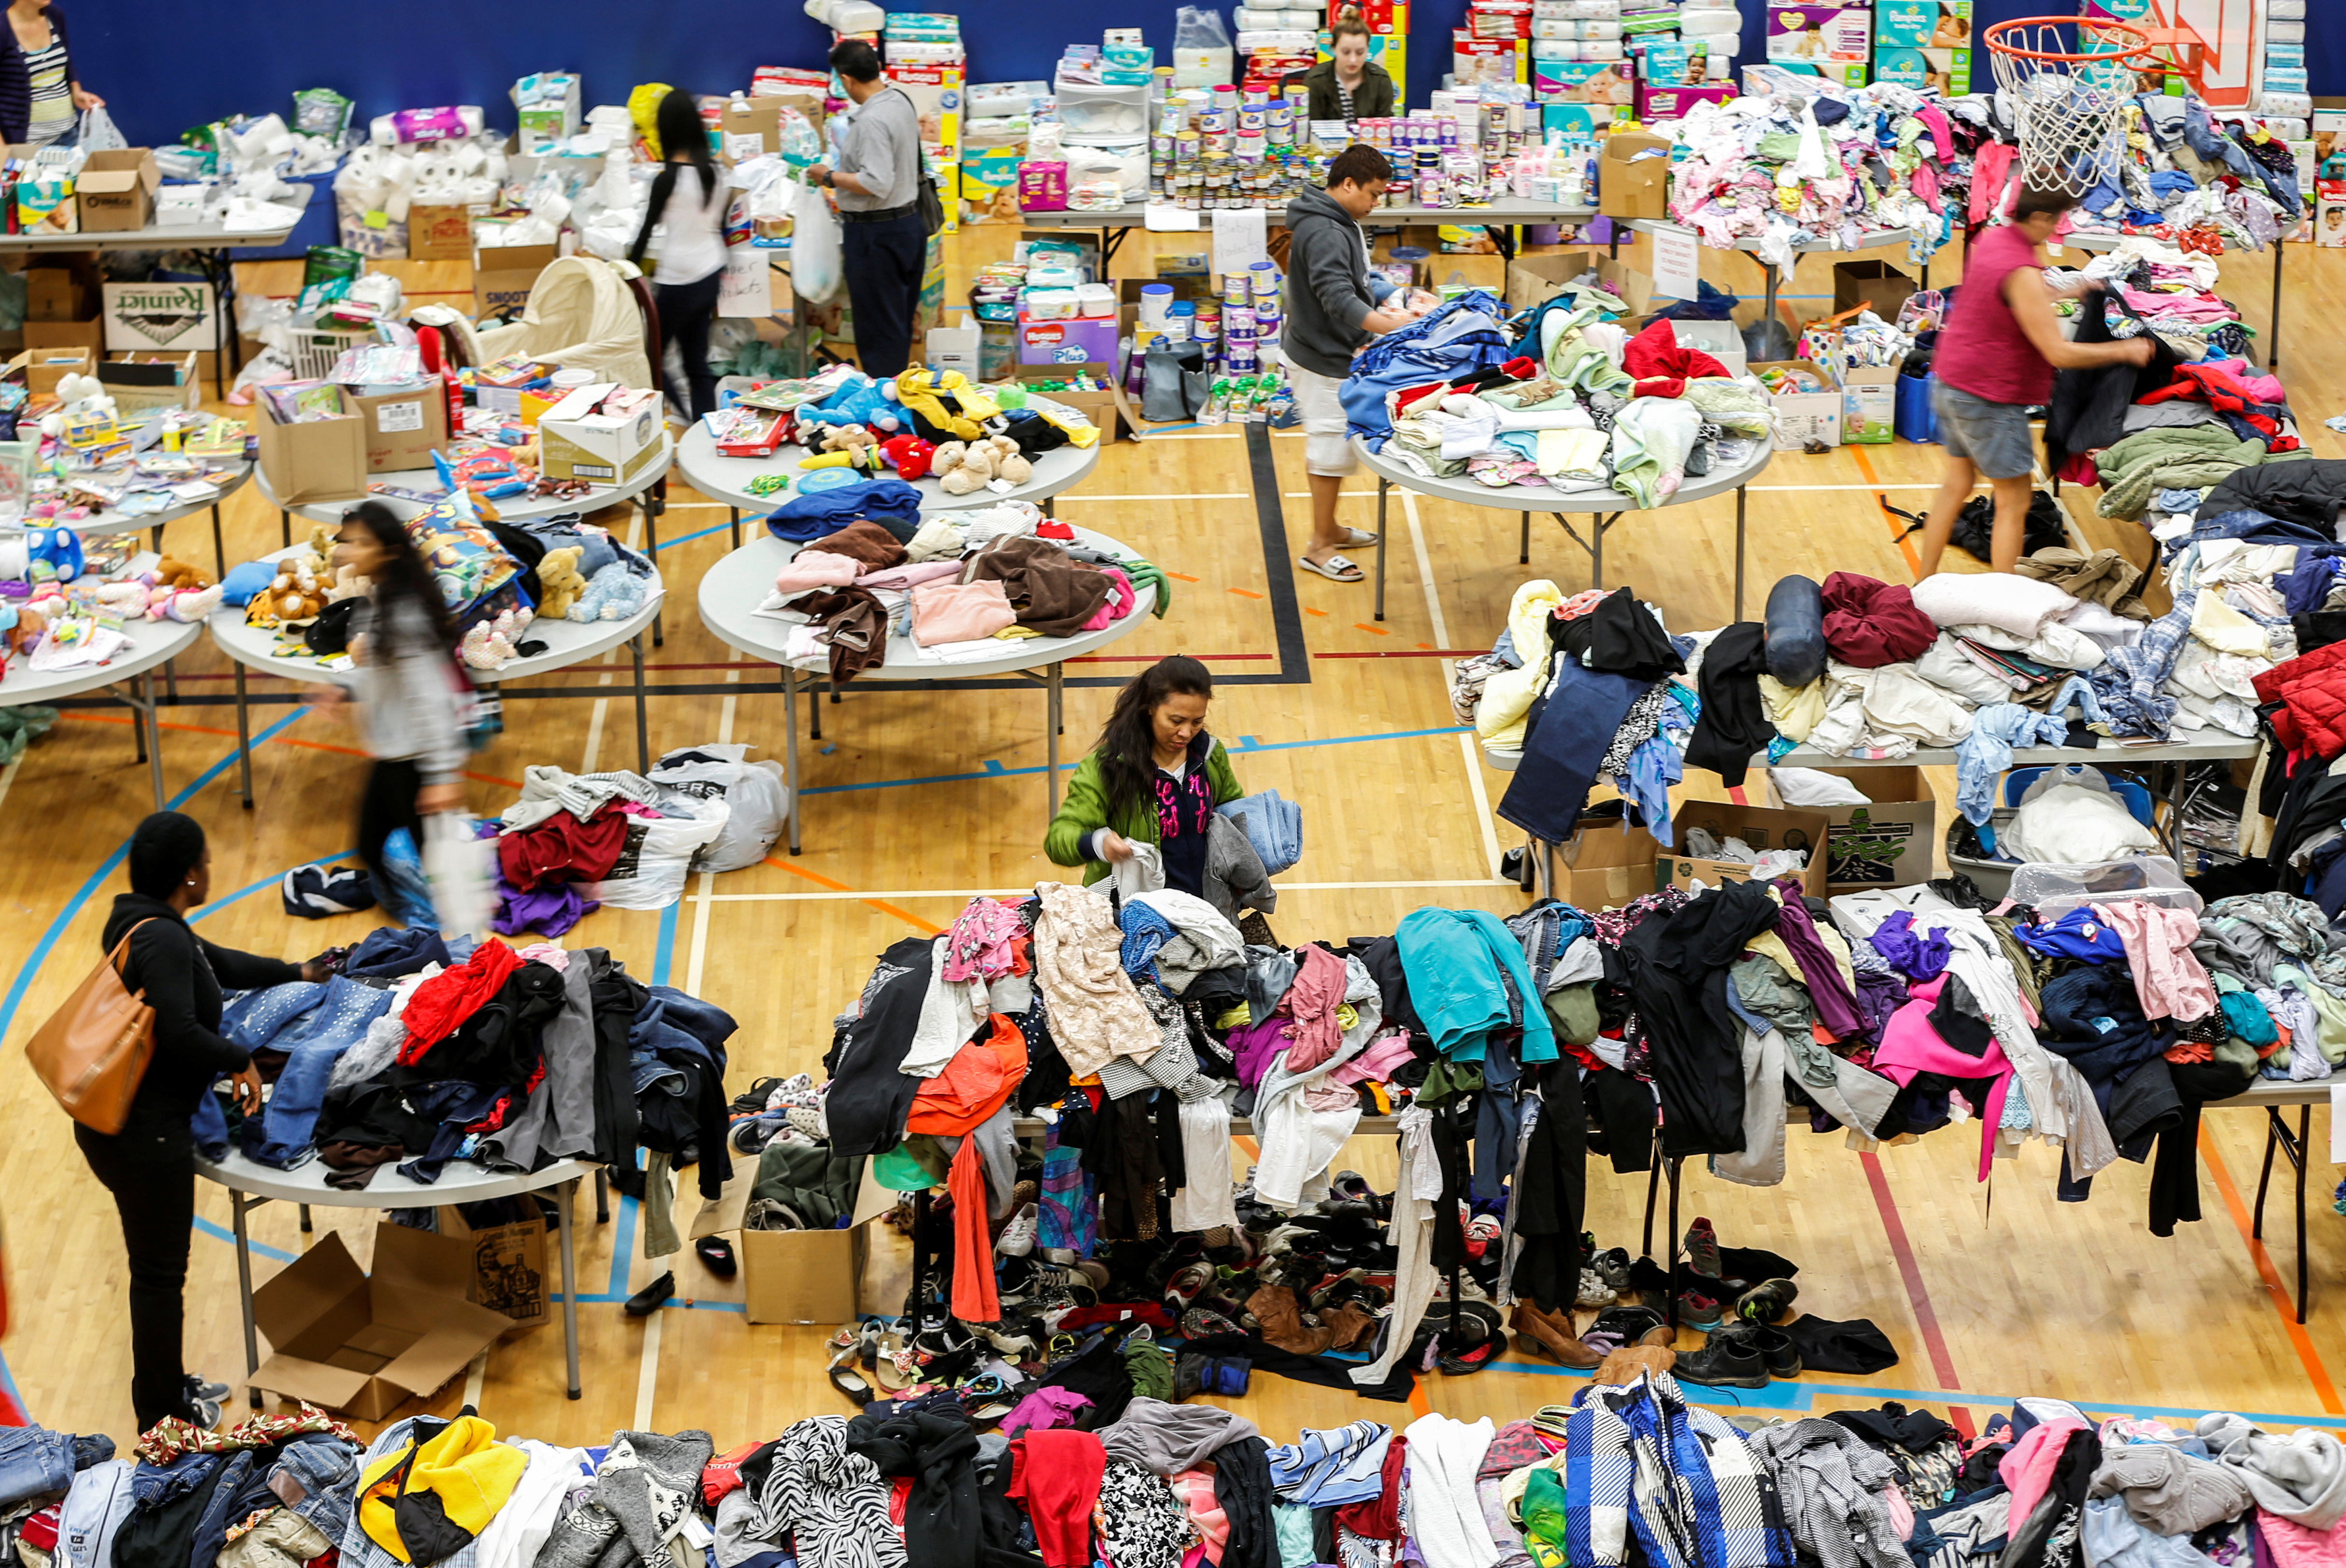 """Evacuees from the Fort McMurray wildfires look through donated goods and clothing at the """"Bold Center"""" in Lac la Biche"""